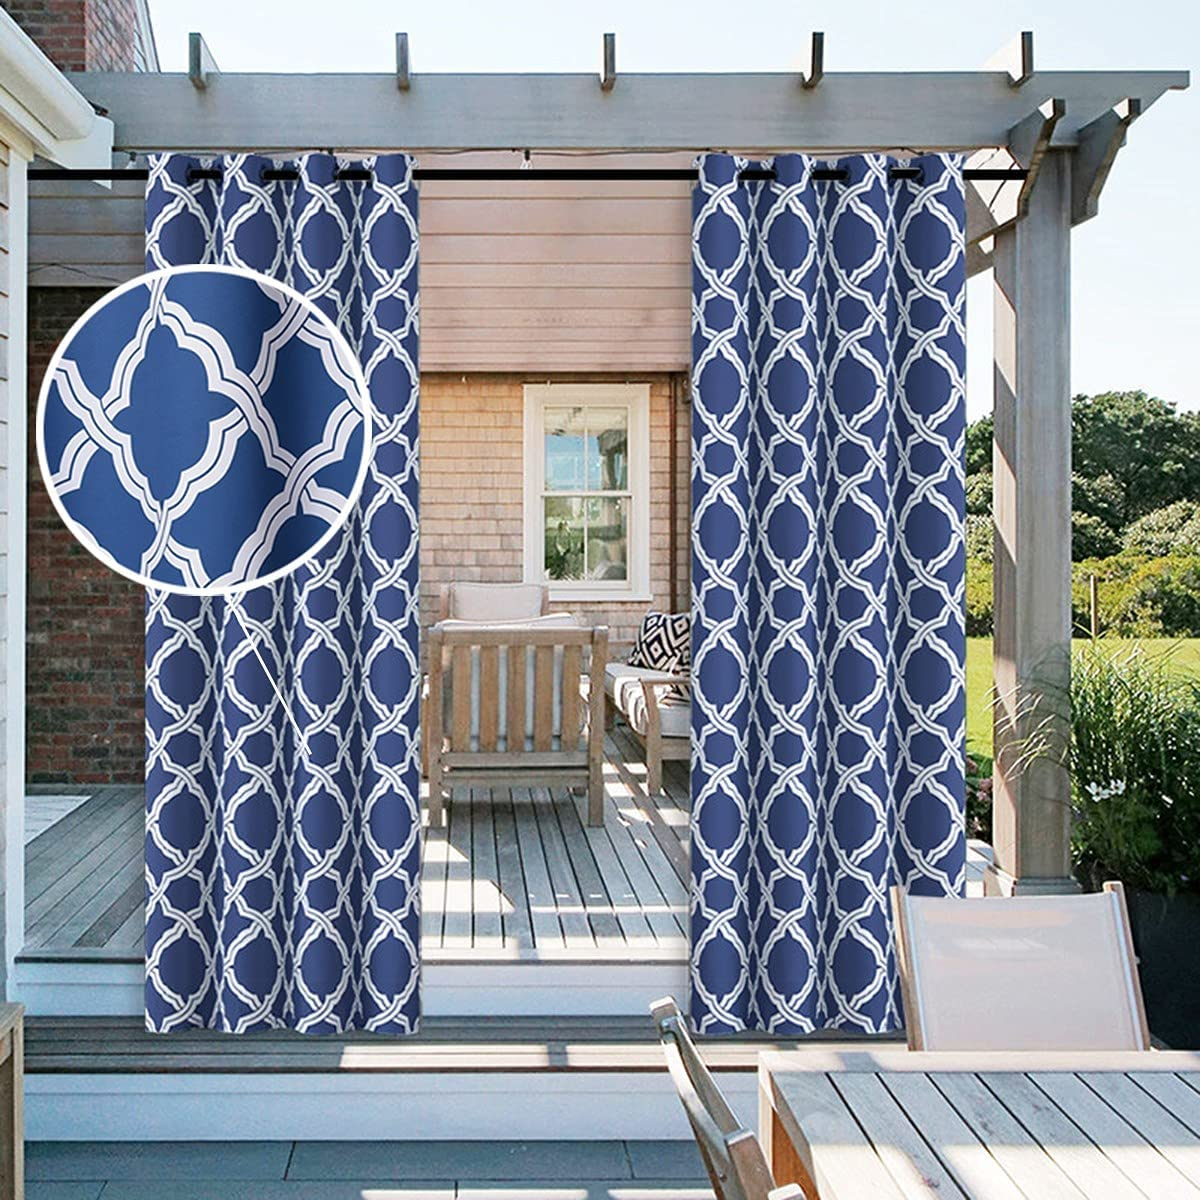 PPGE Home 1 Panel Jacquard Rustproof with Max Popular product 41% OFF Outdoor Curtains Style